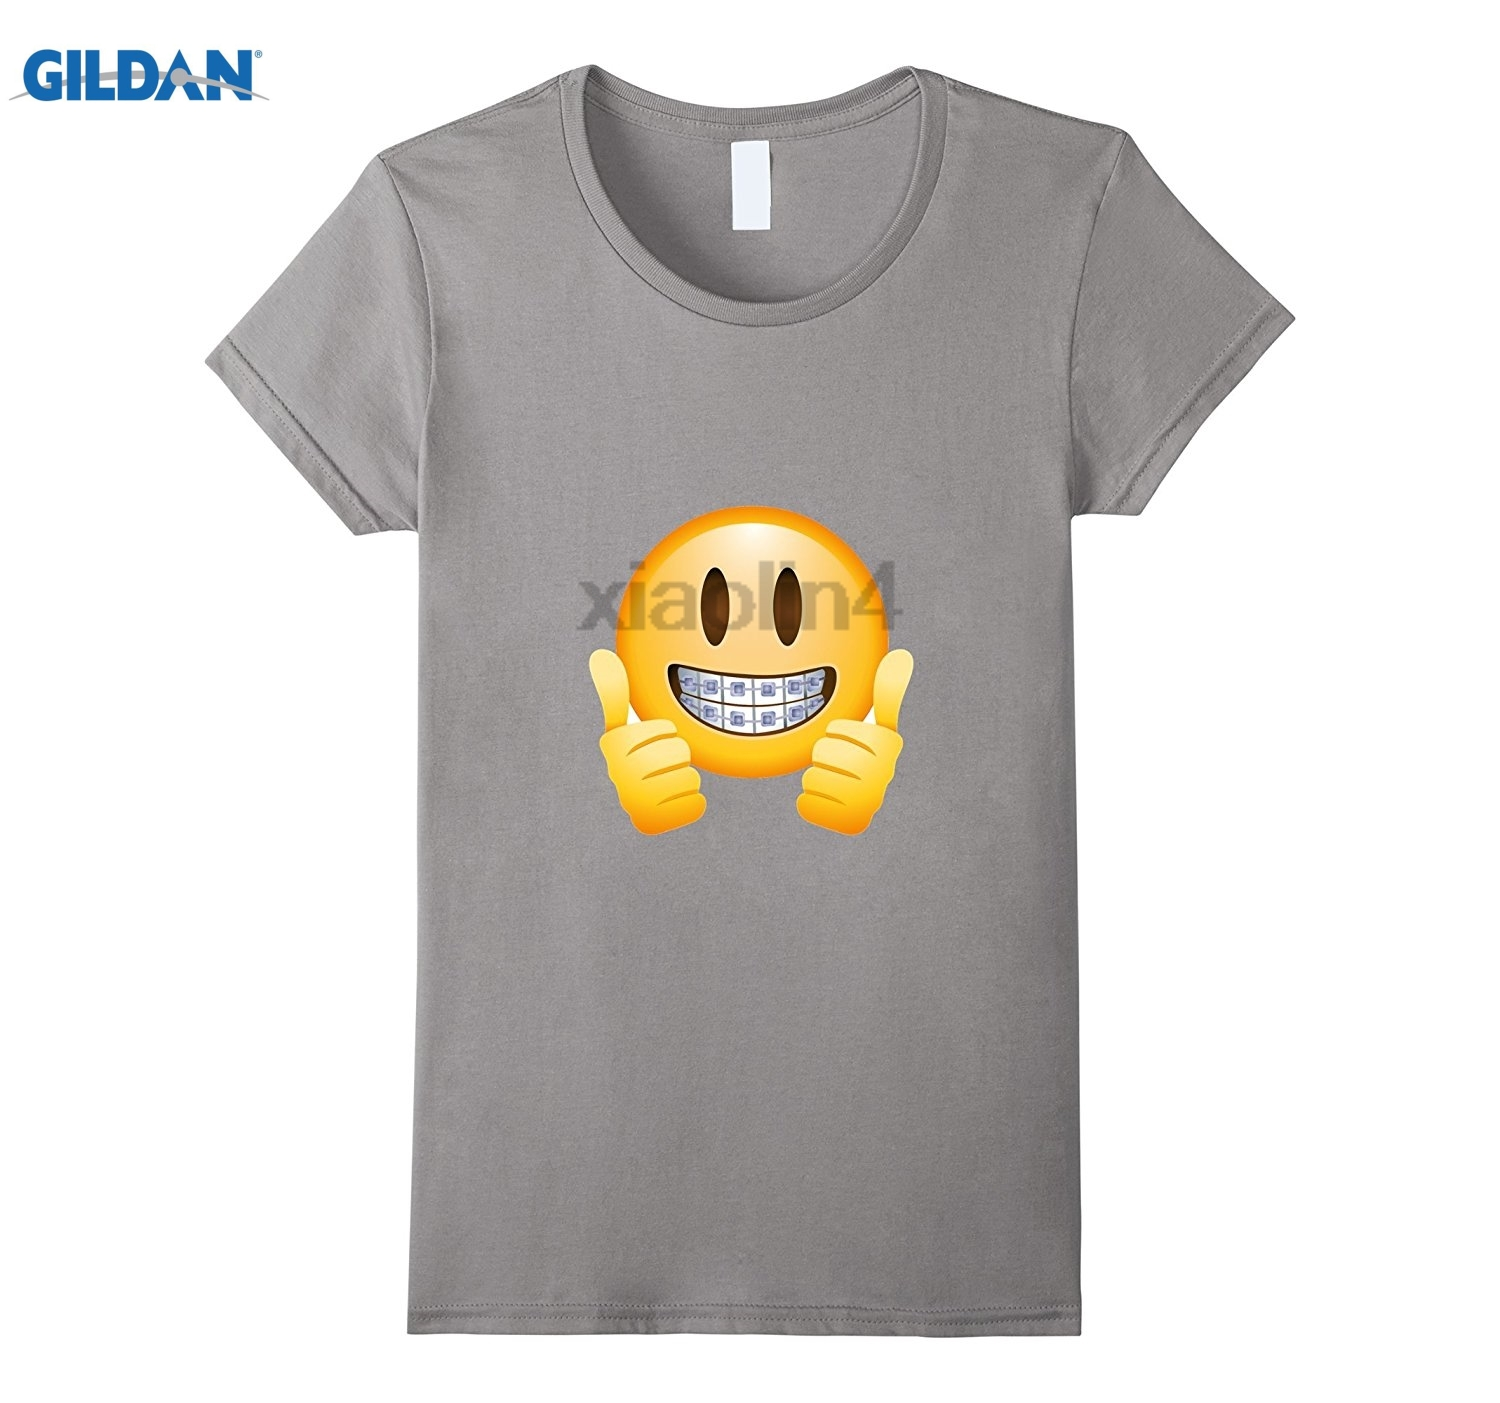 GILDAN Braces Emoji T-Shirt Thumbs Up Smile Face Happy Mouth Teeth GILDAN Short-Sleeved Cotton New Mens T-Shirt Size S - 3XL